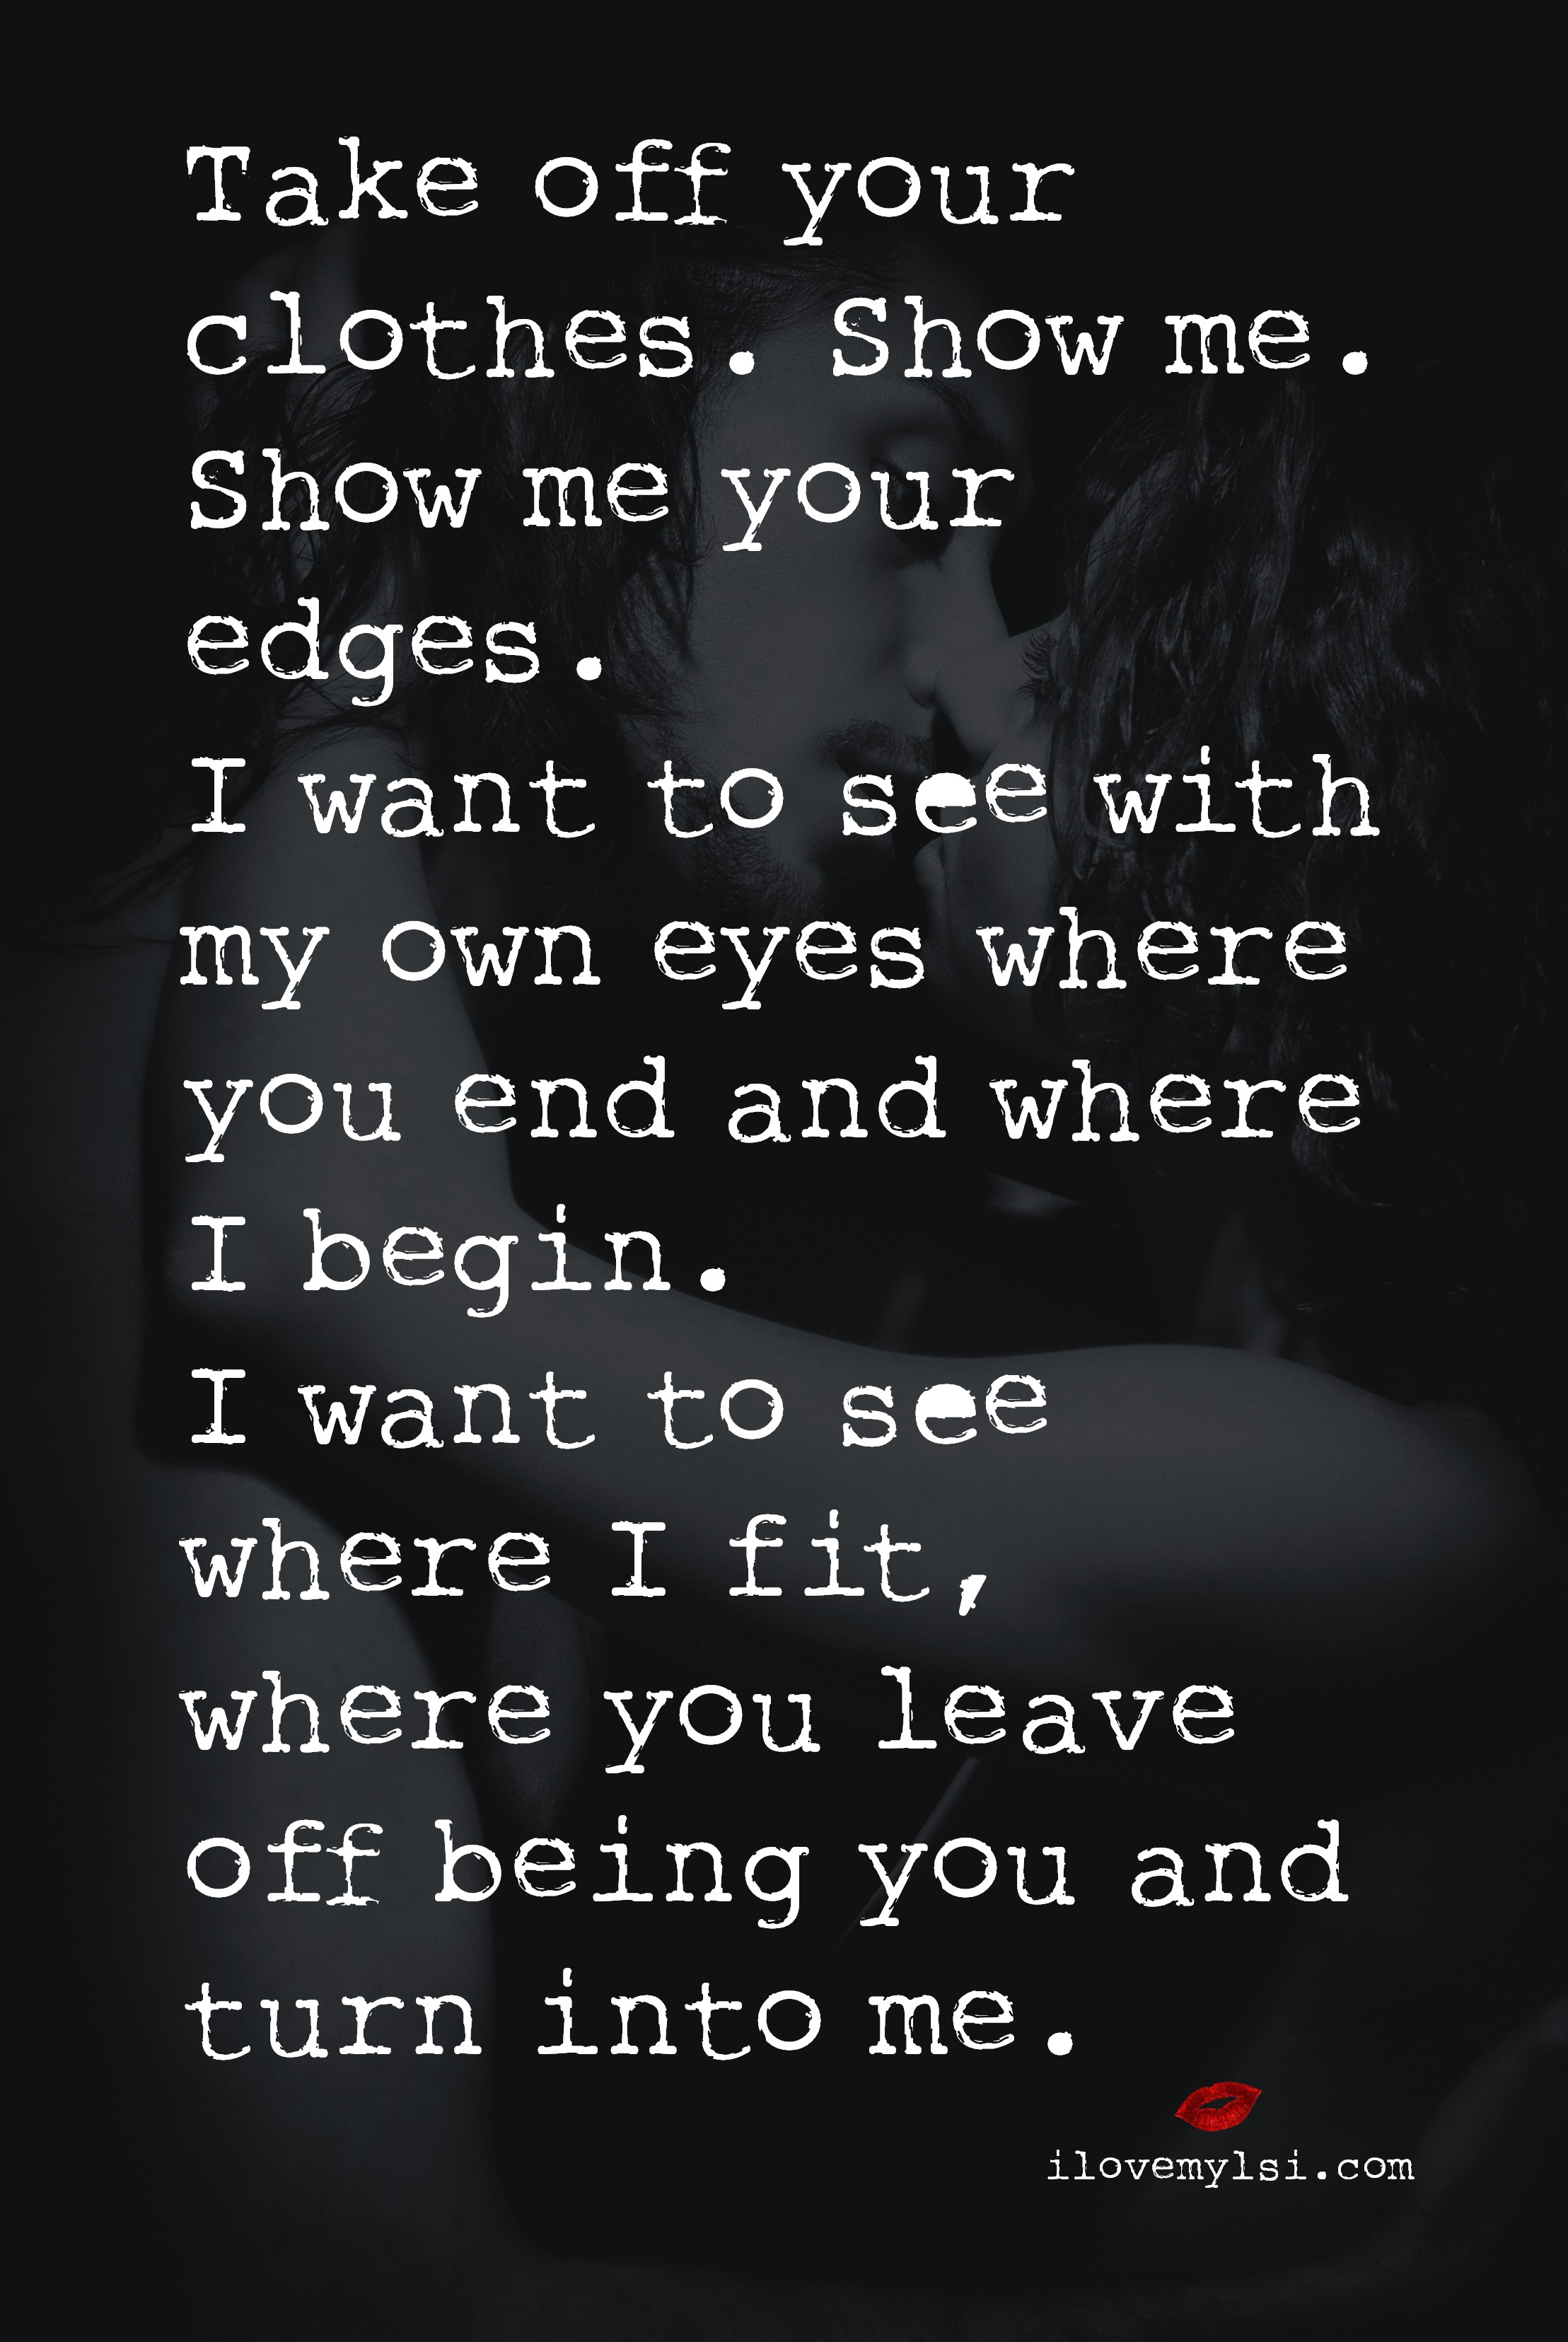 Hot Love Quotes hot love quotes Archives   I Love My LSI Hot Love Quotes